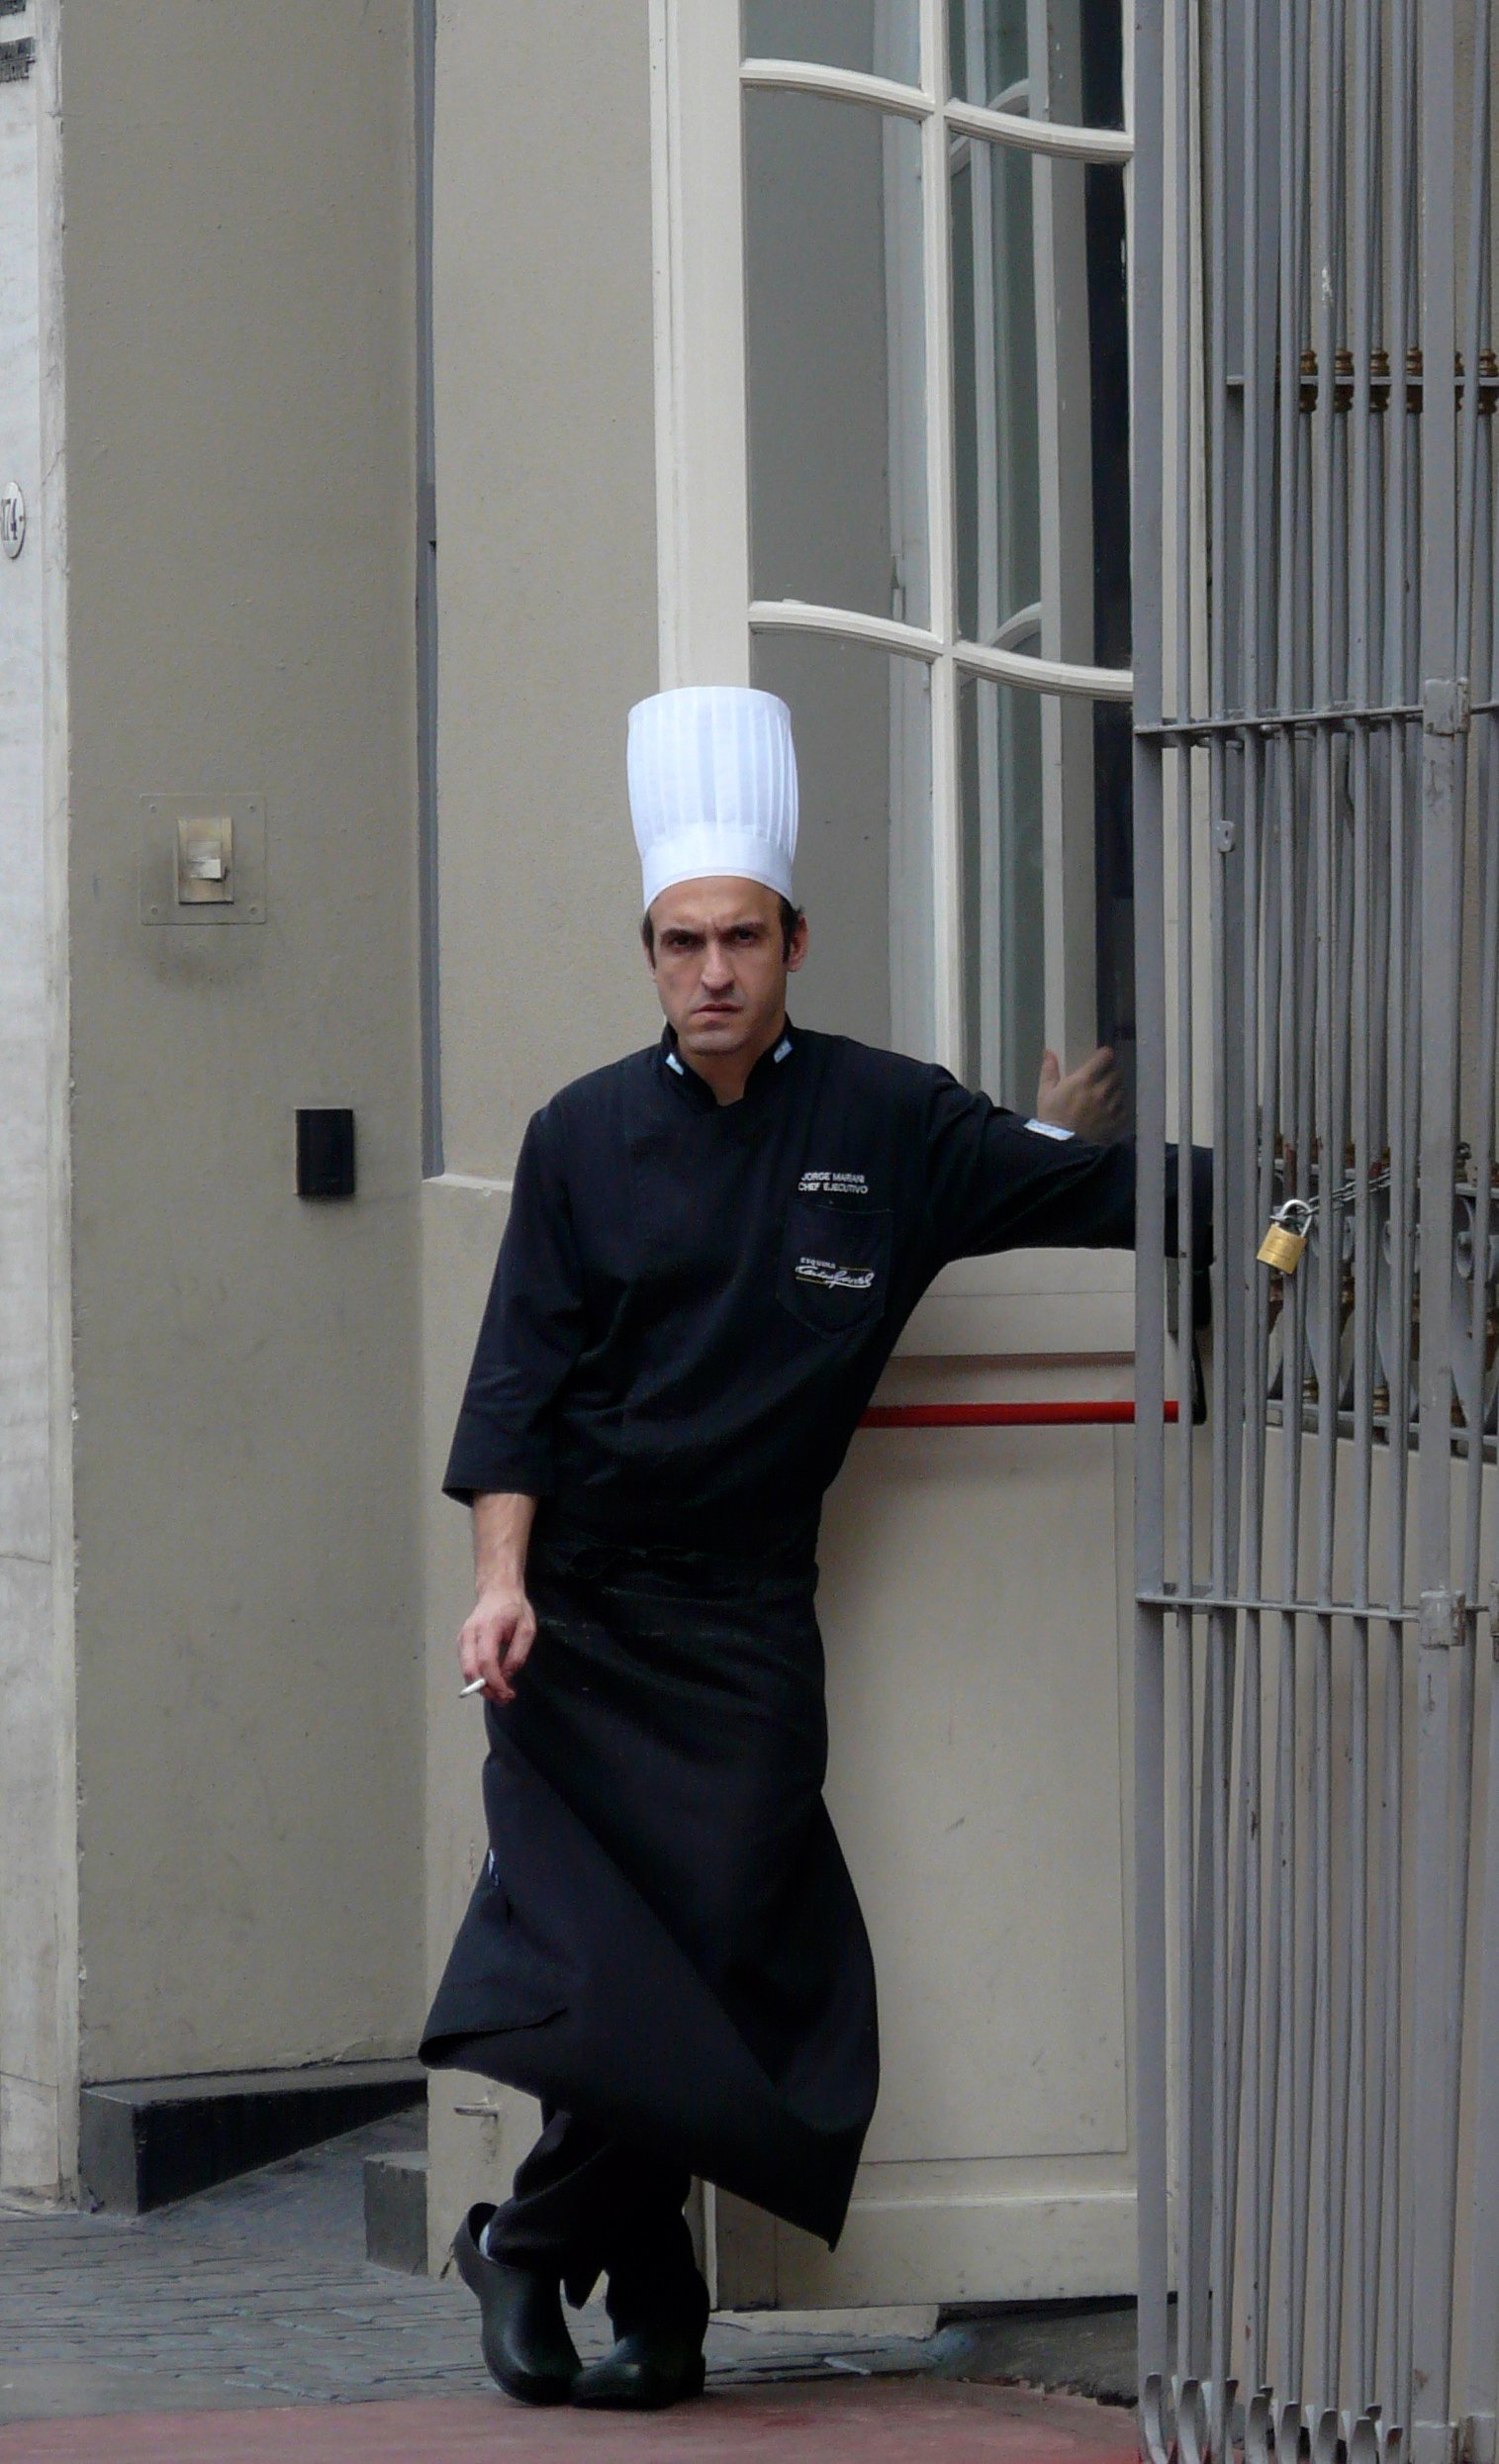 Disgruntled Chef-Buenos Aires Argentina.